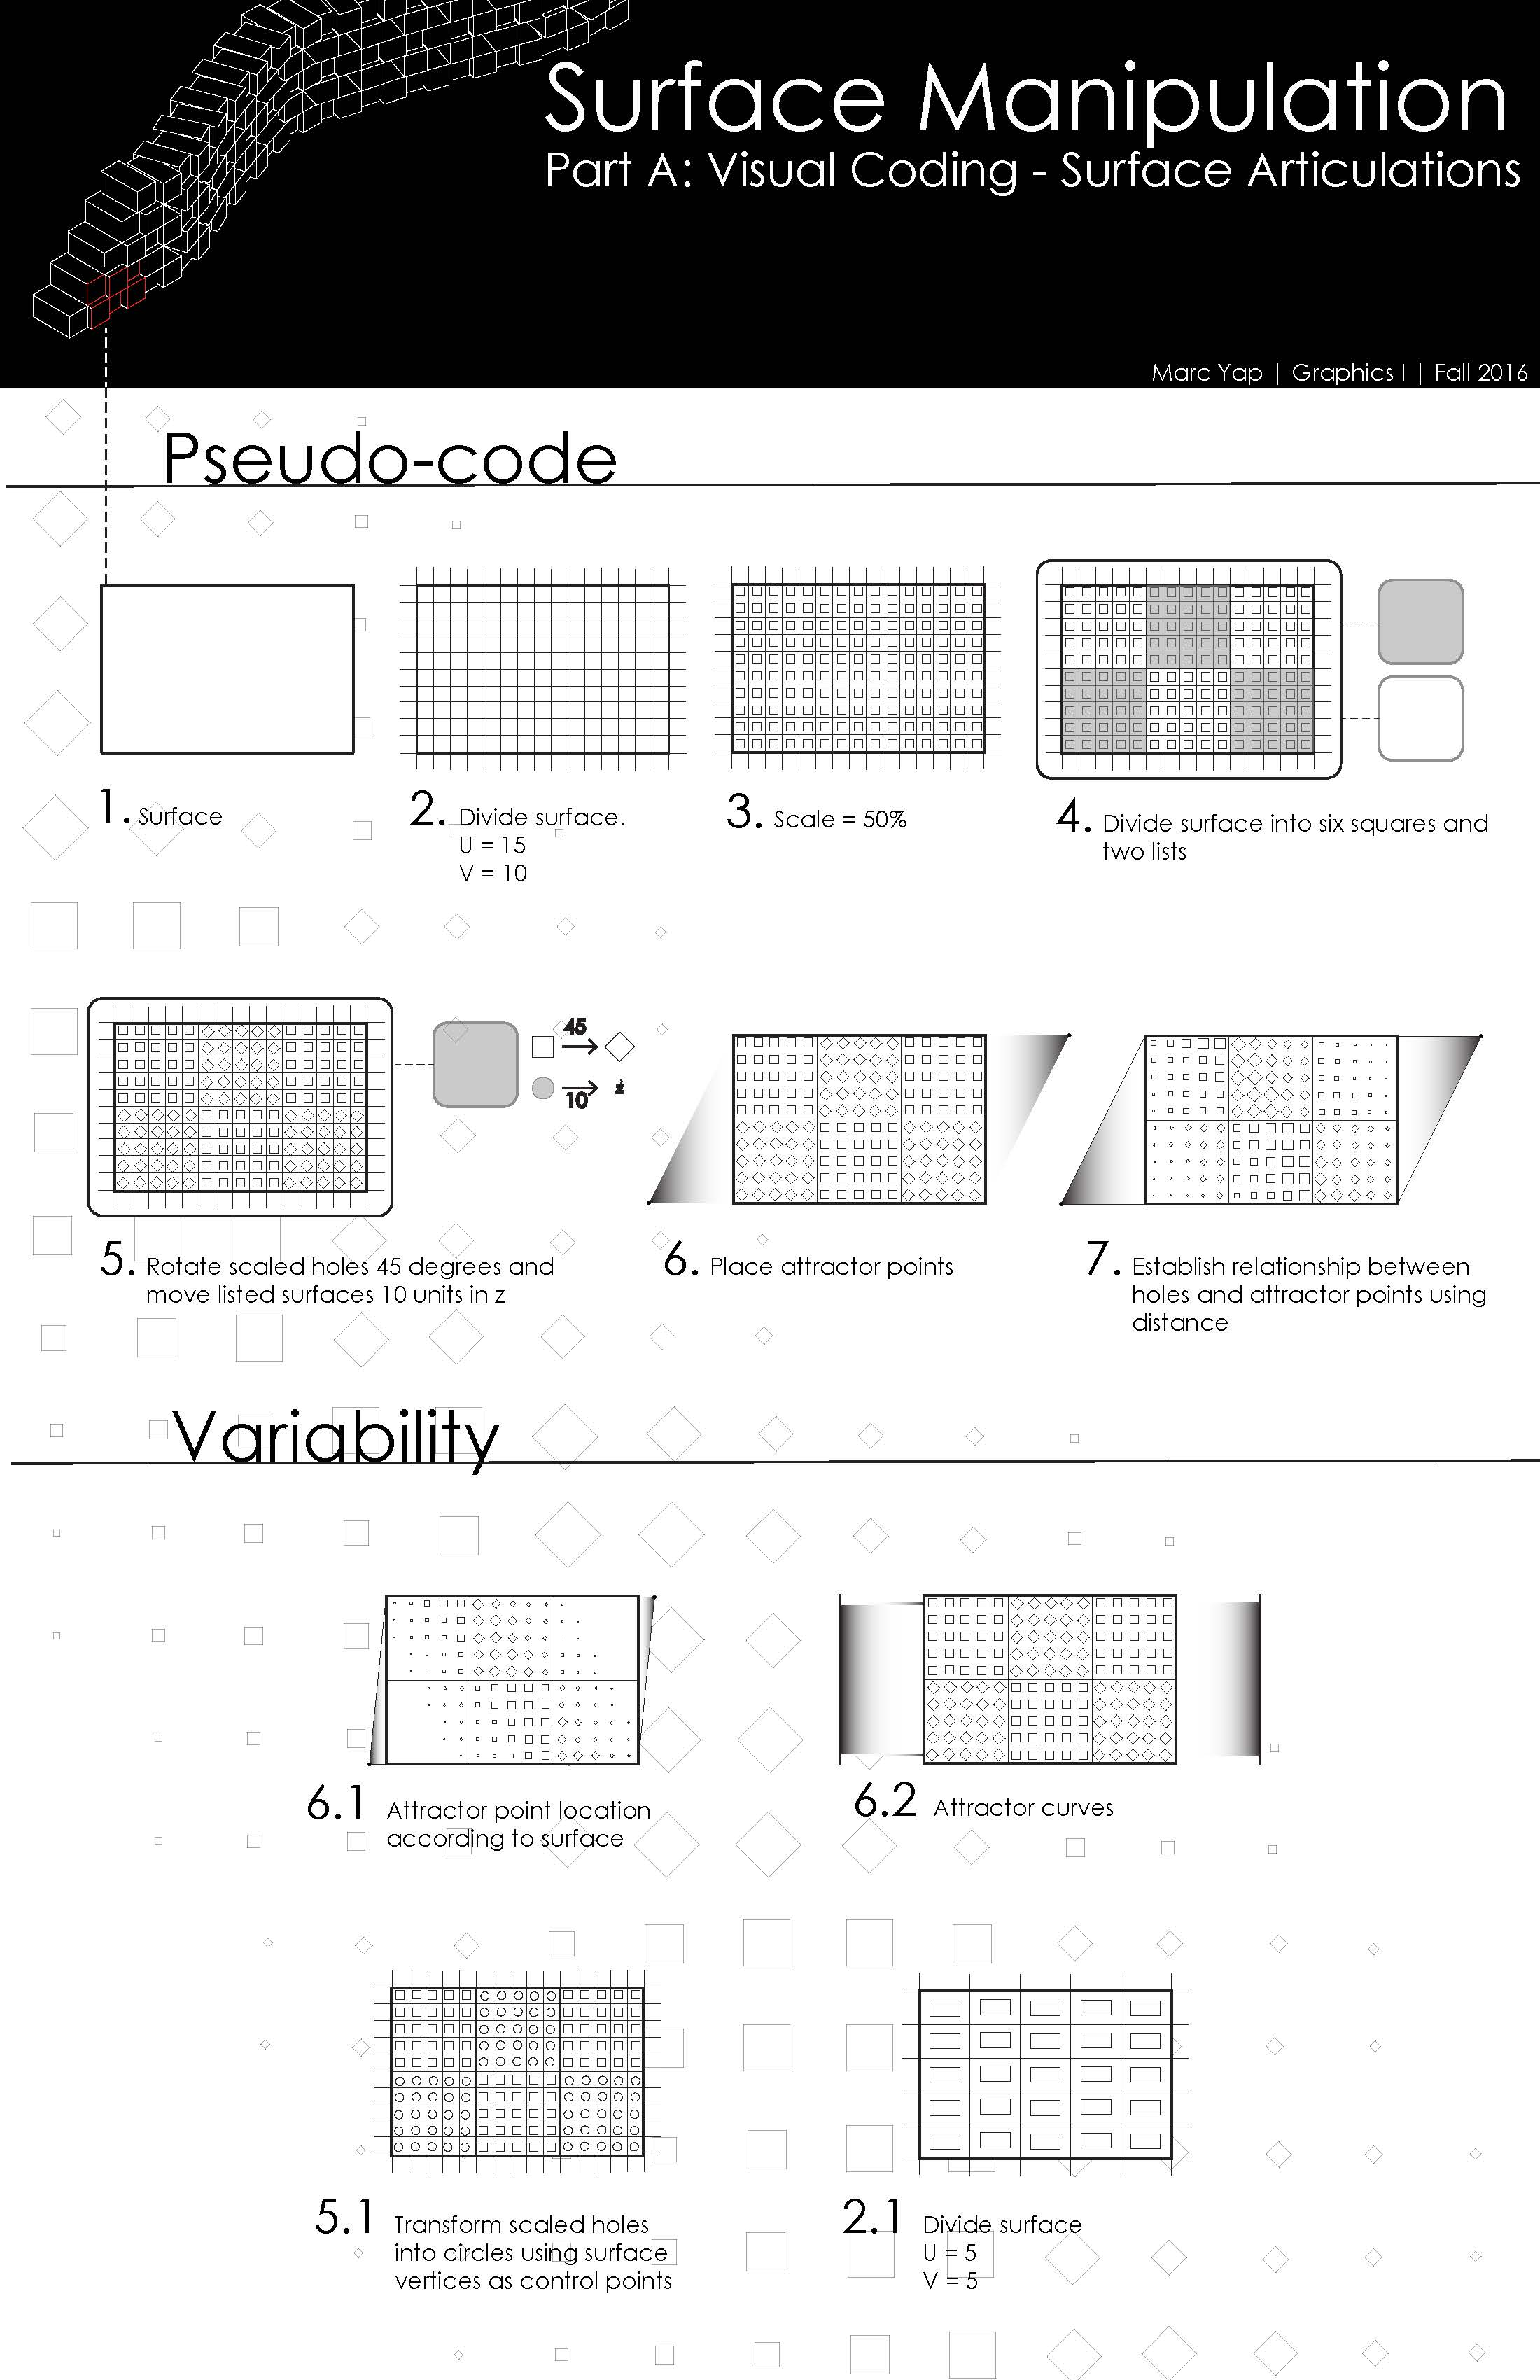 Visual Coding - Image Articulations